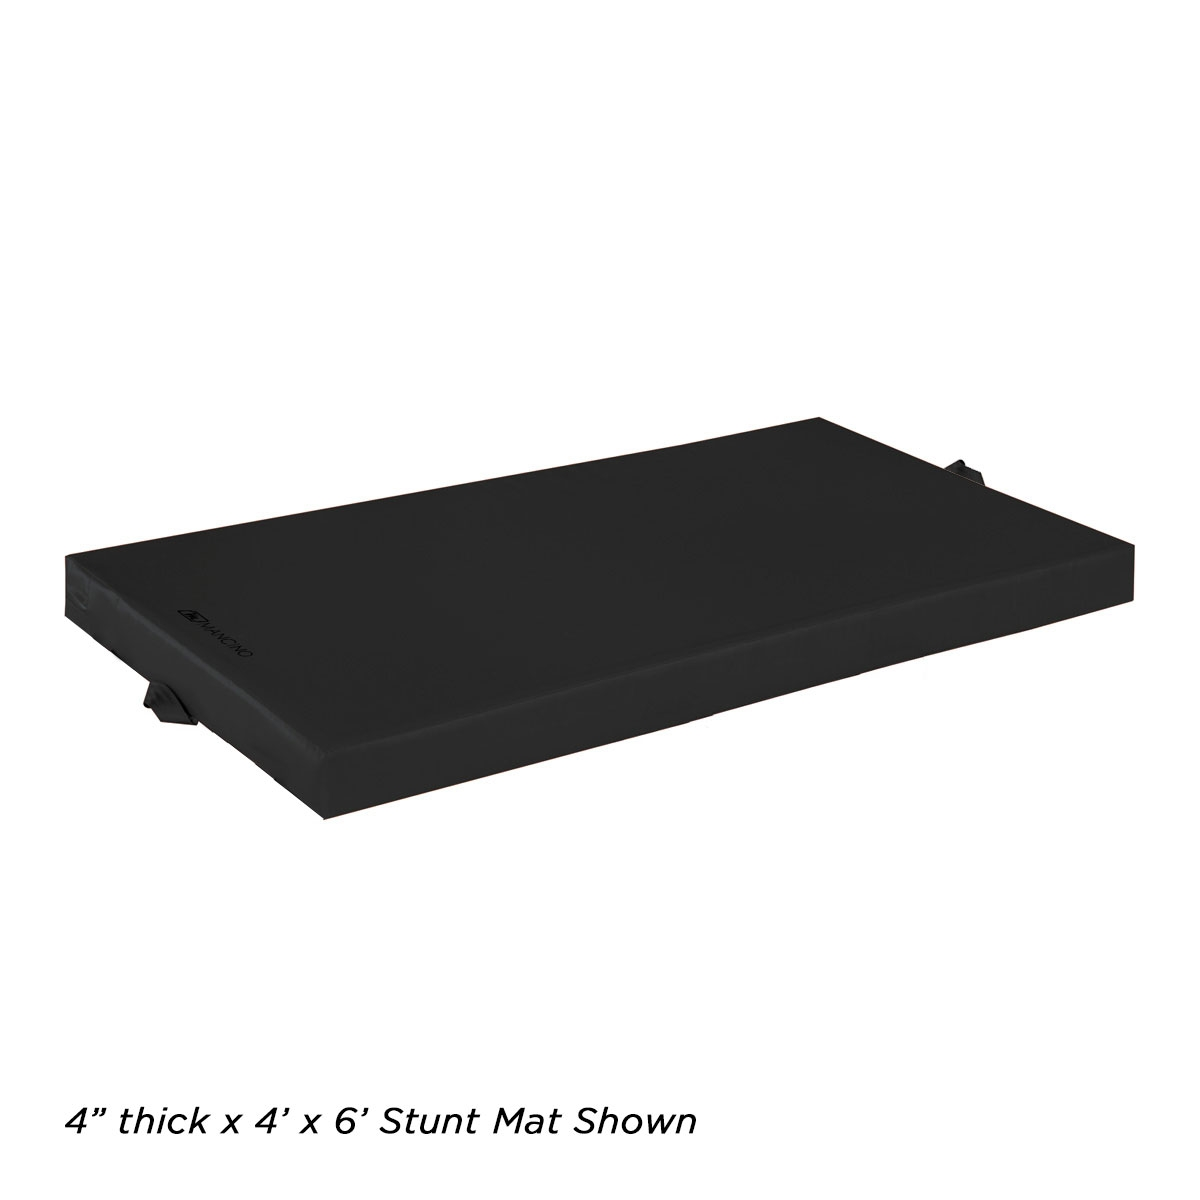 4 inch thick black landing mat for stunts and falls